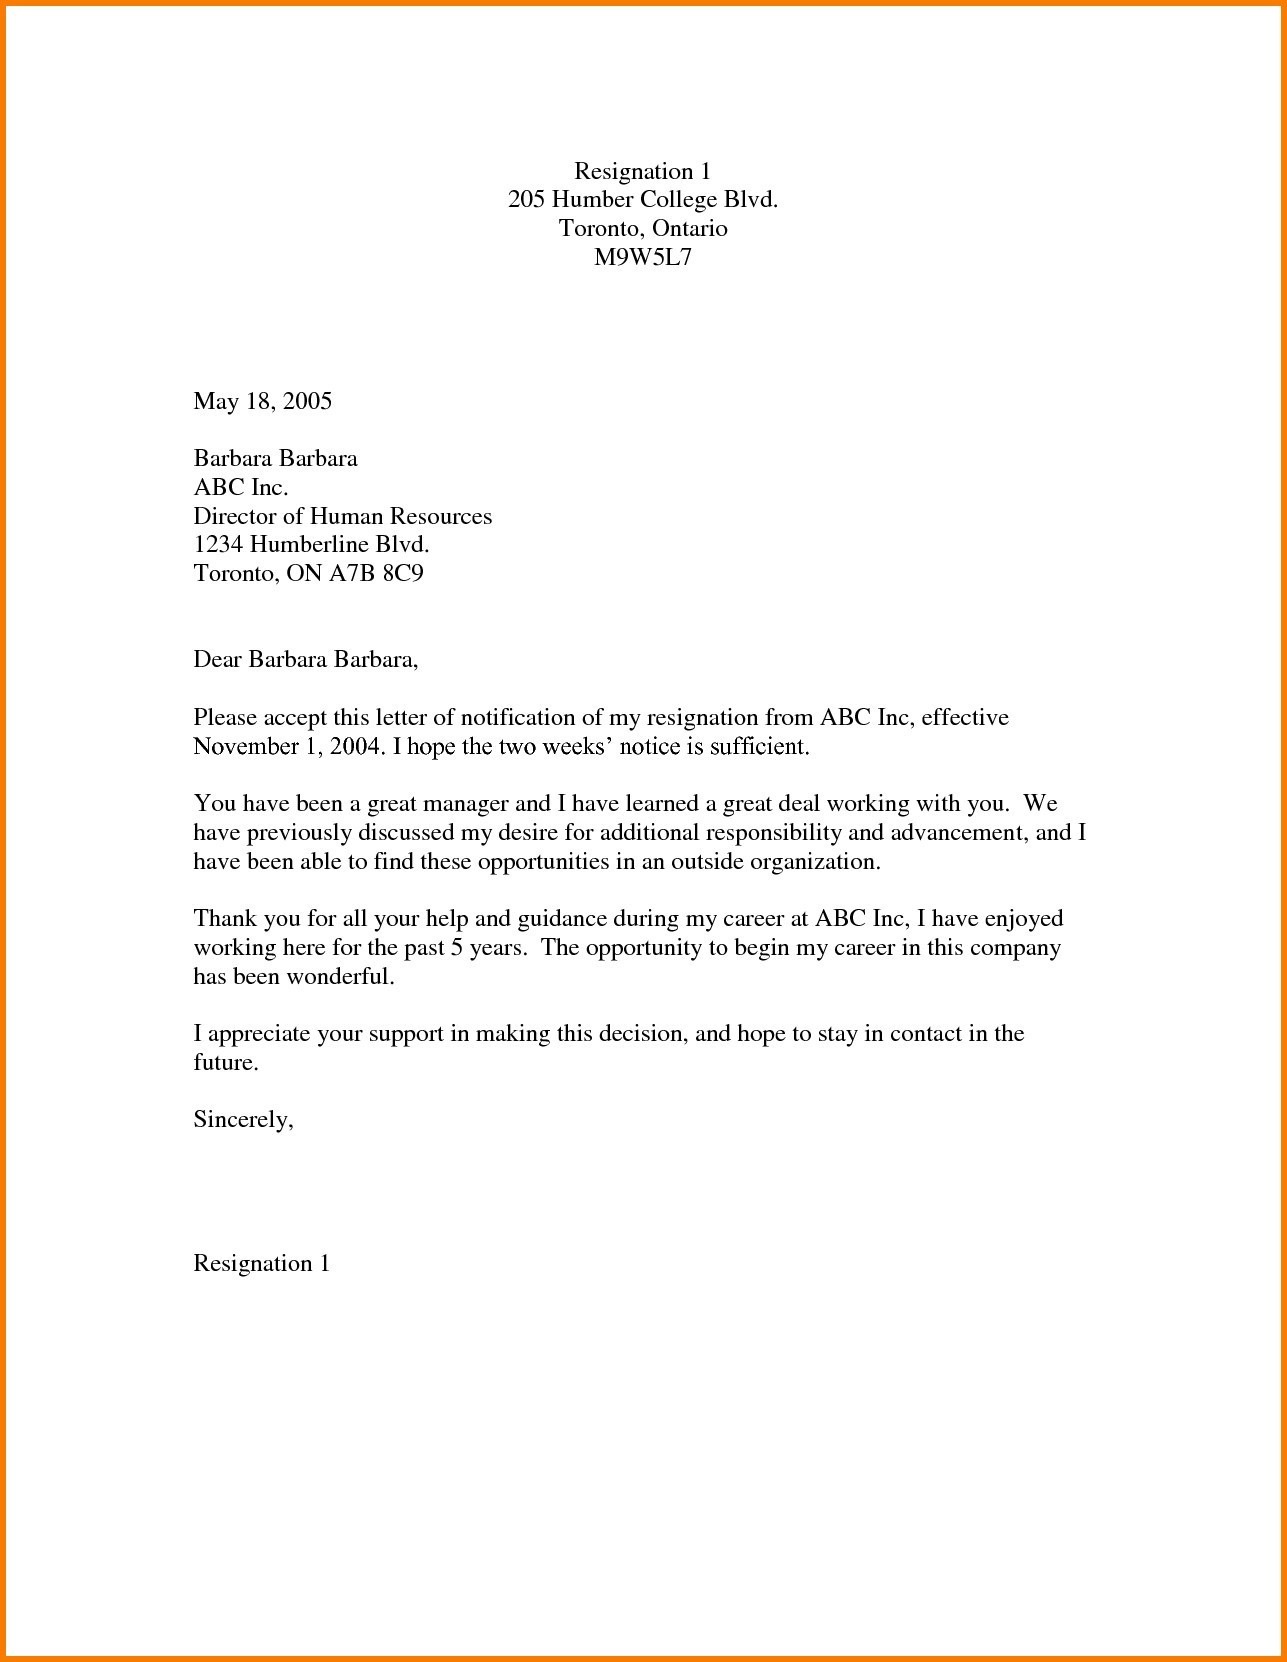 Business Collaboration Letter Template - Letter Intent Template Business Partnership Fresh Sample Business